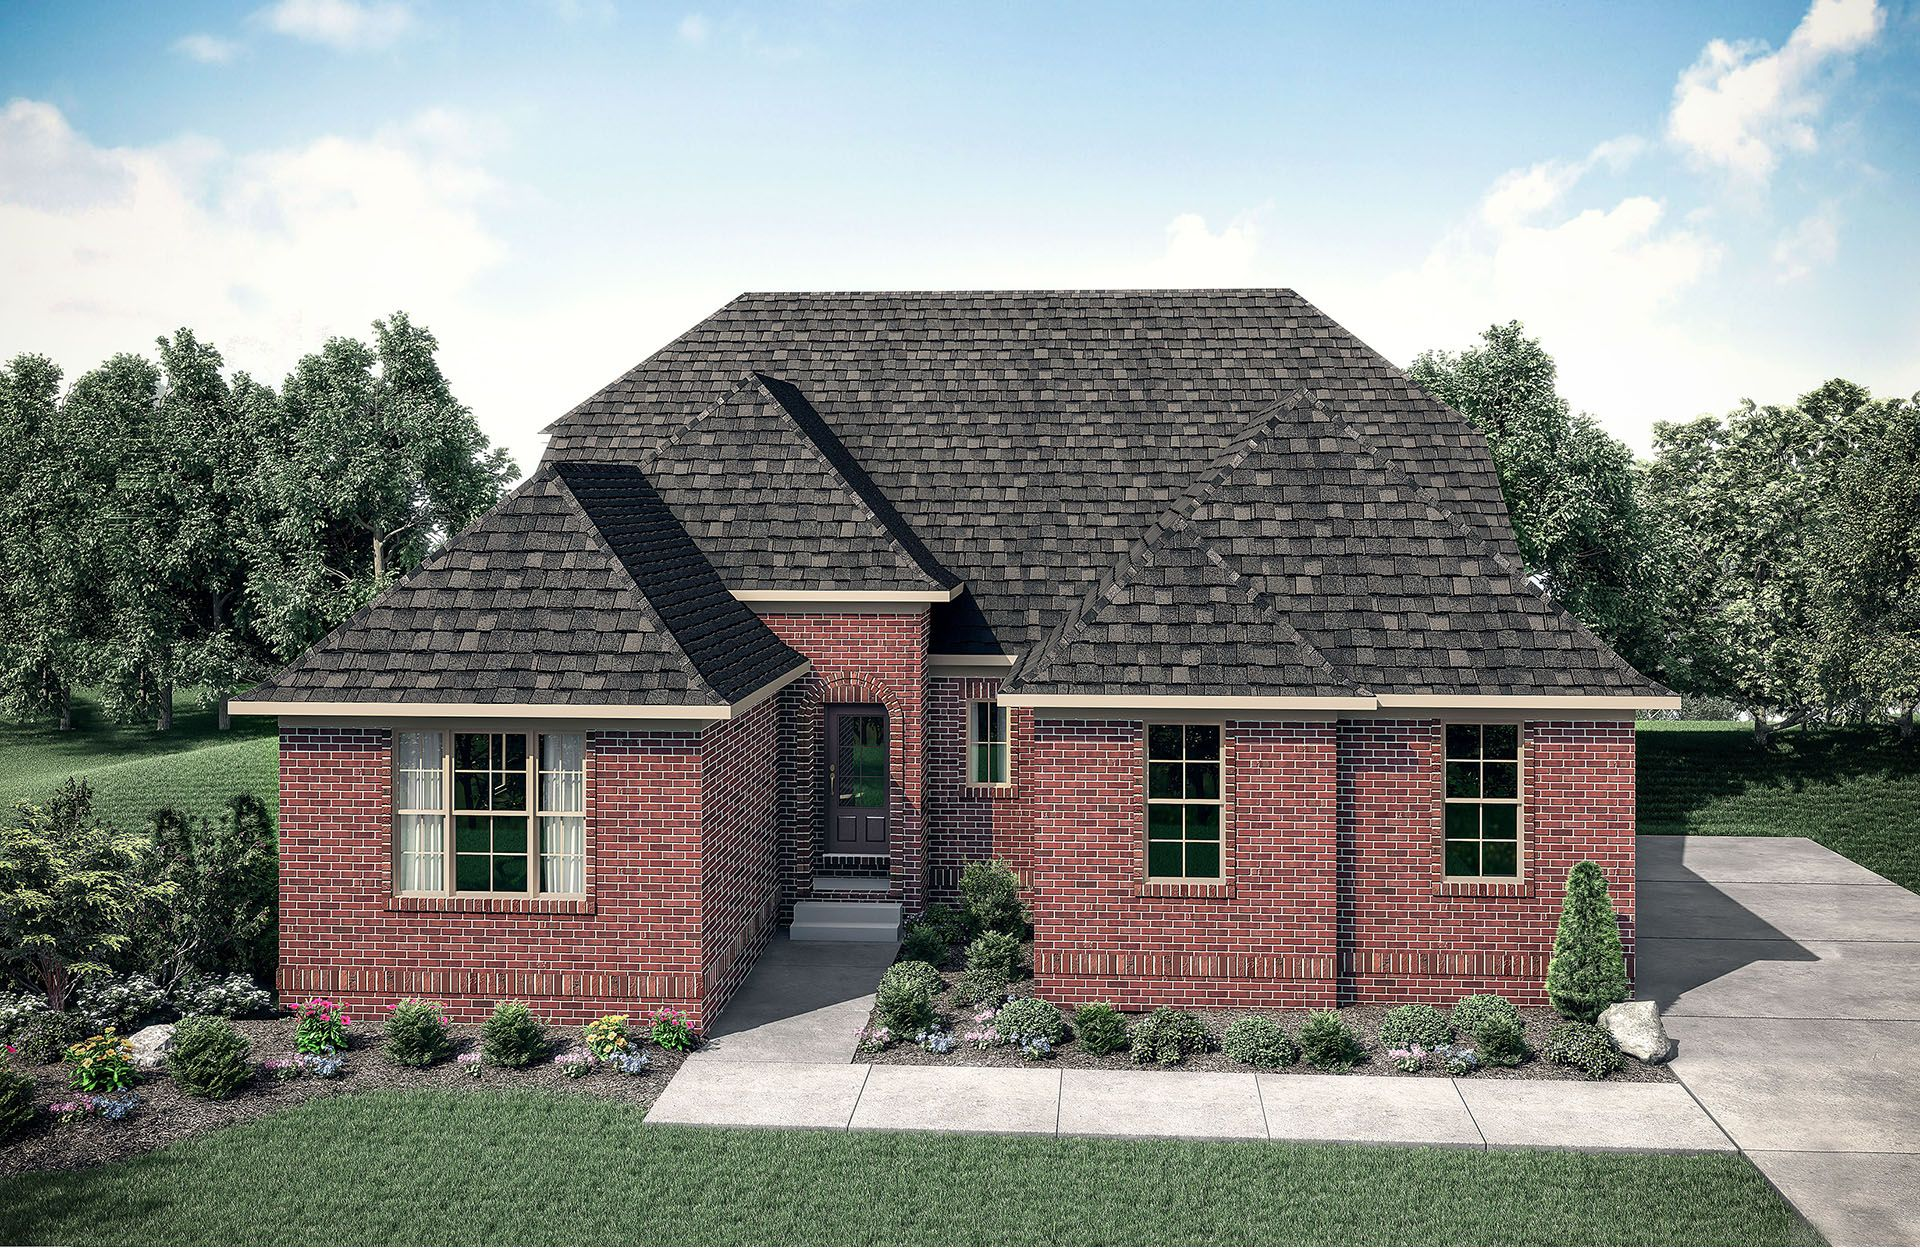 100 drees floor plans tn drees homes arbor crest bradford